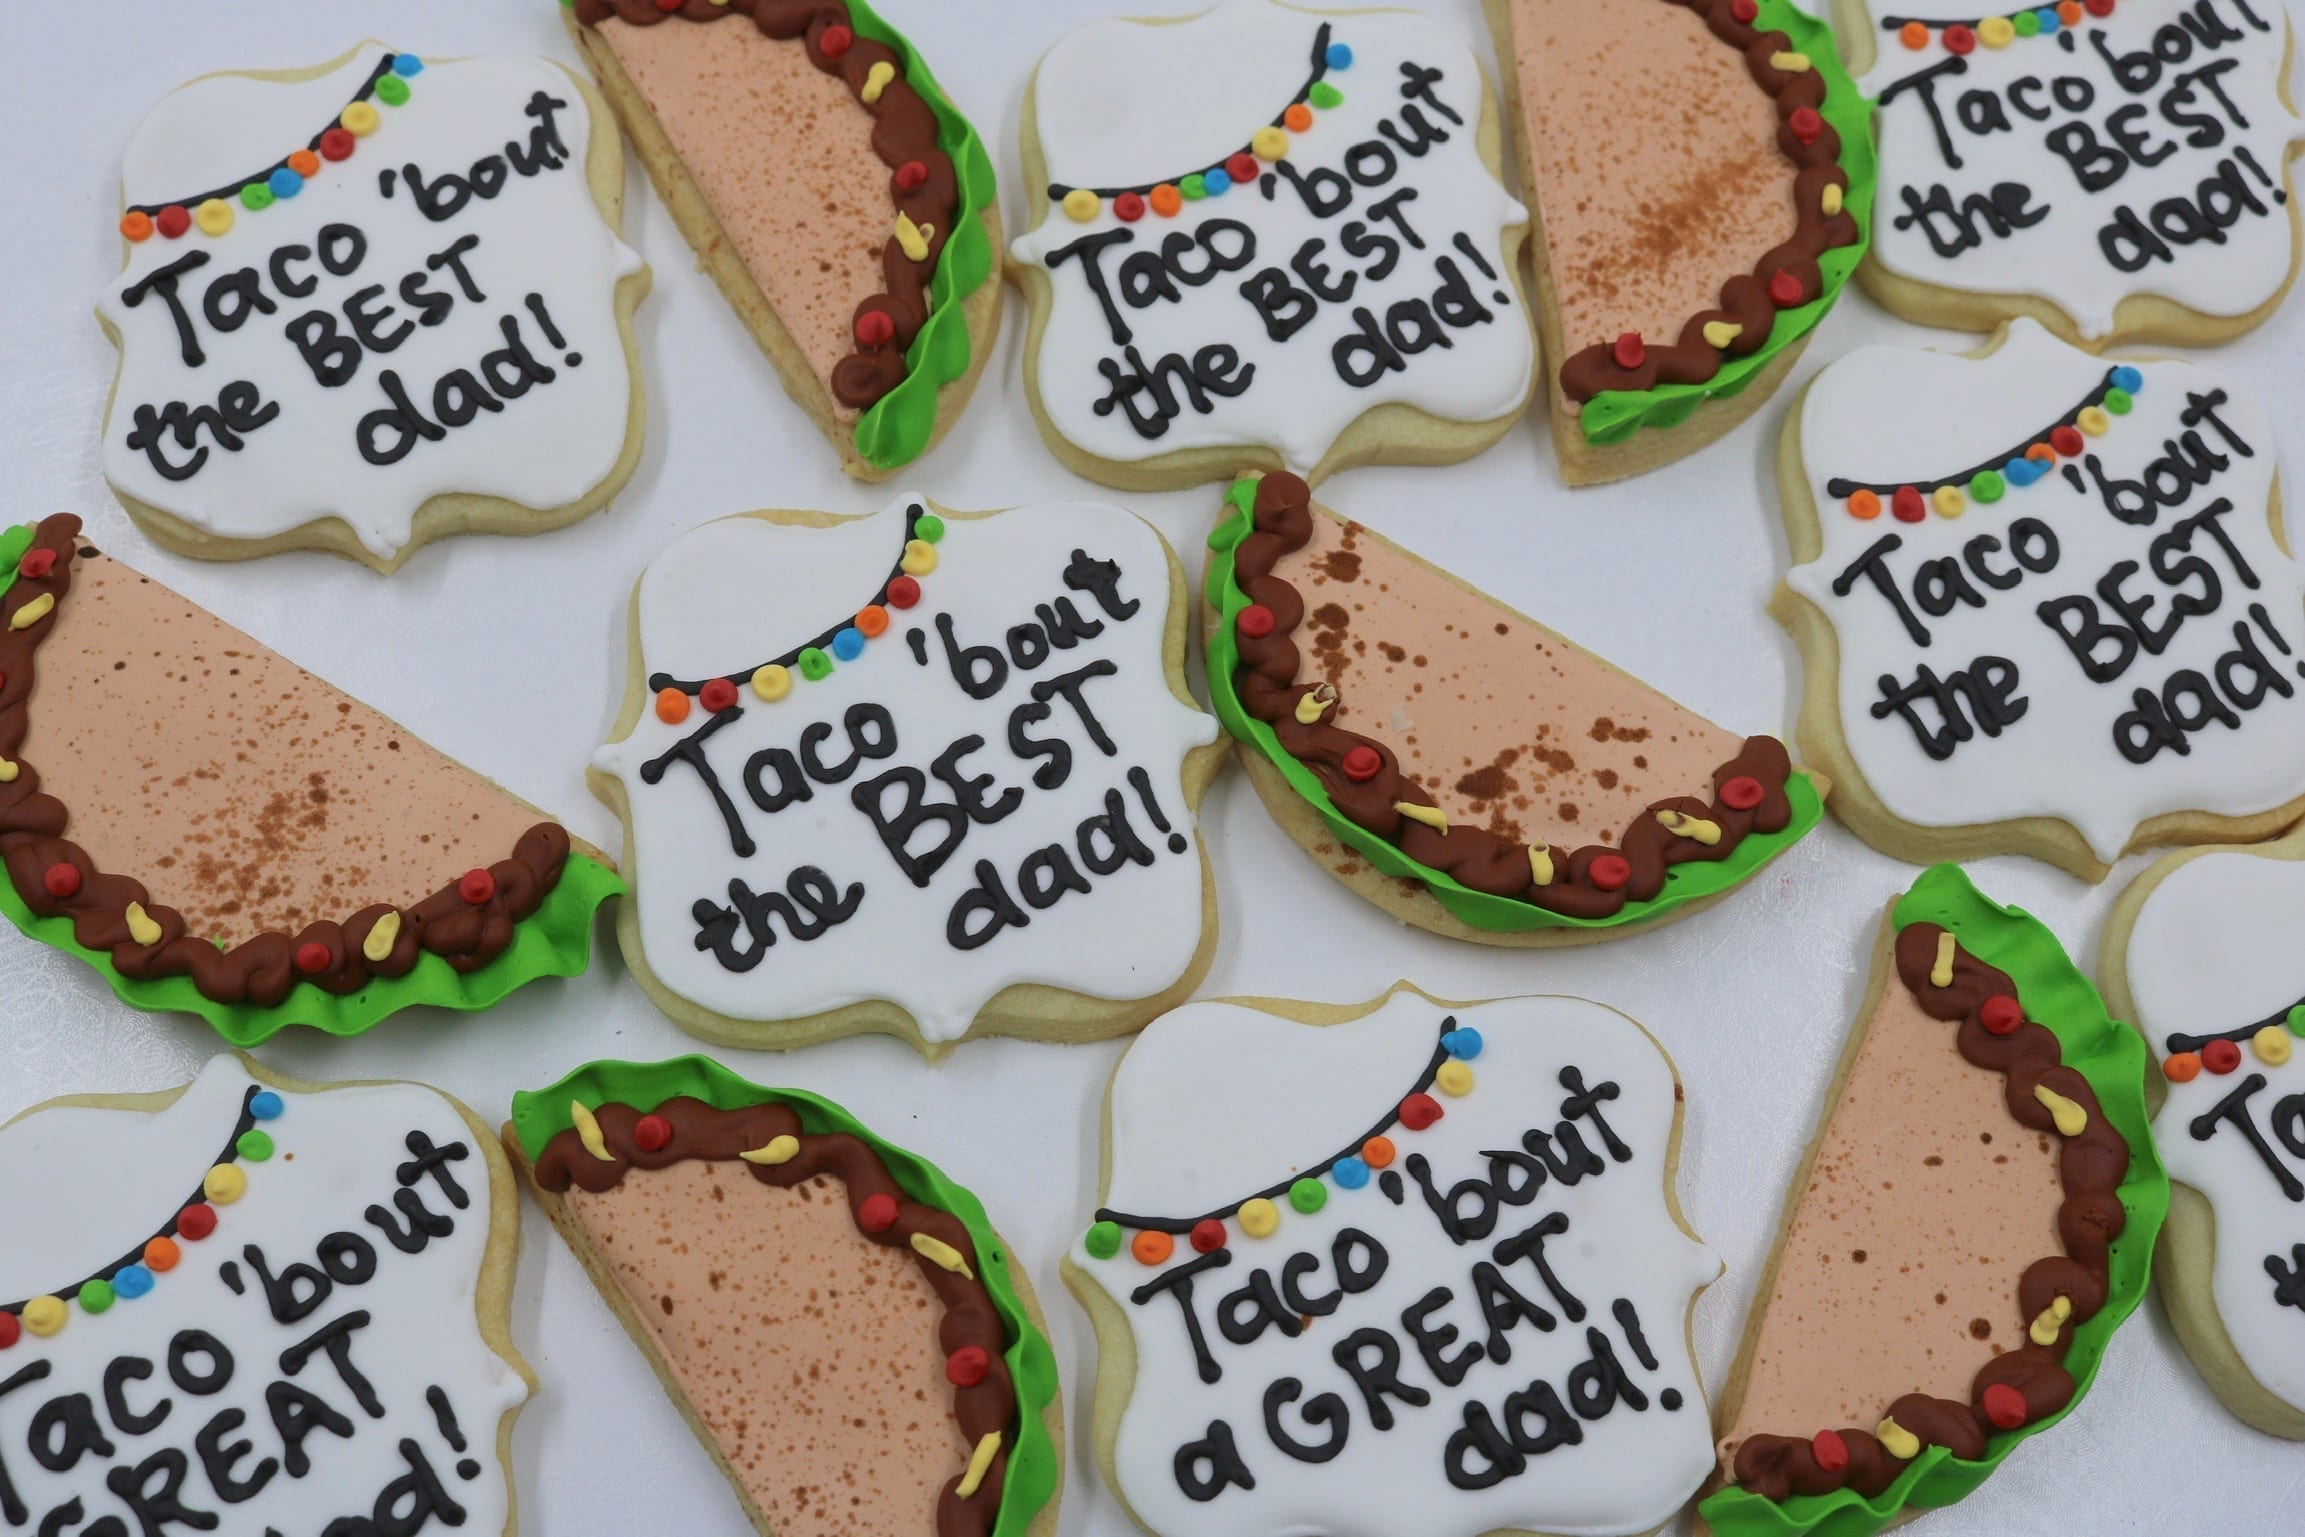 Taco Bout The Best Dad Cookies for Fathers Day| 3 Sweet Girls Cakery